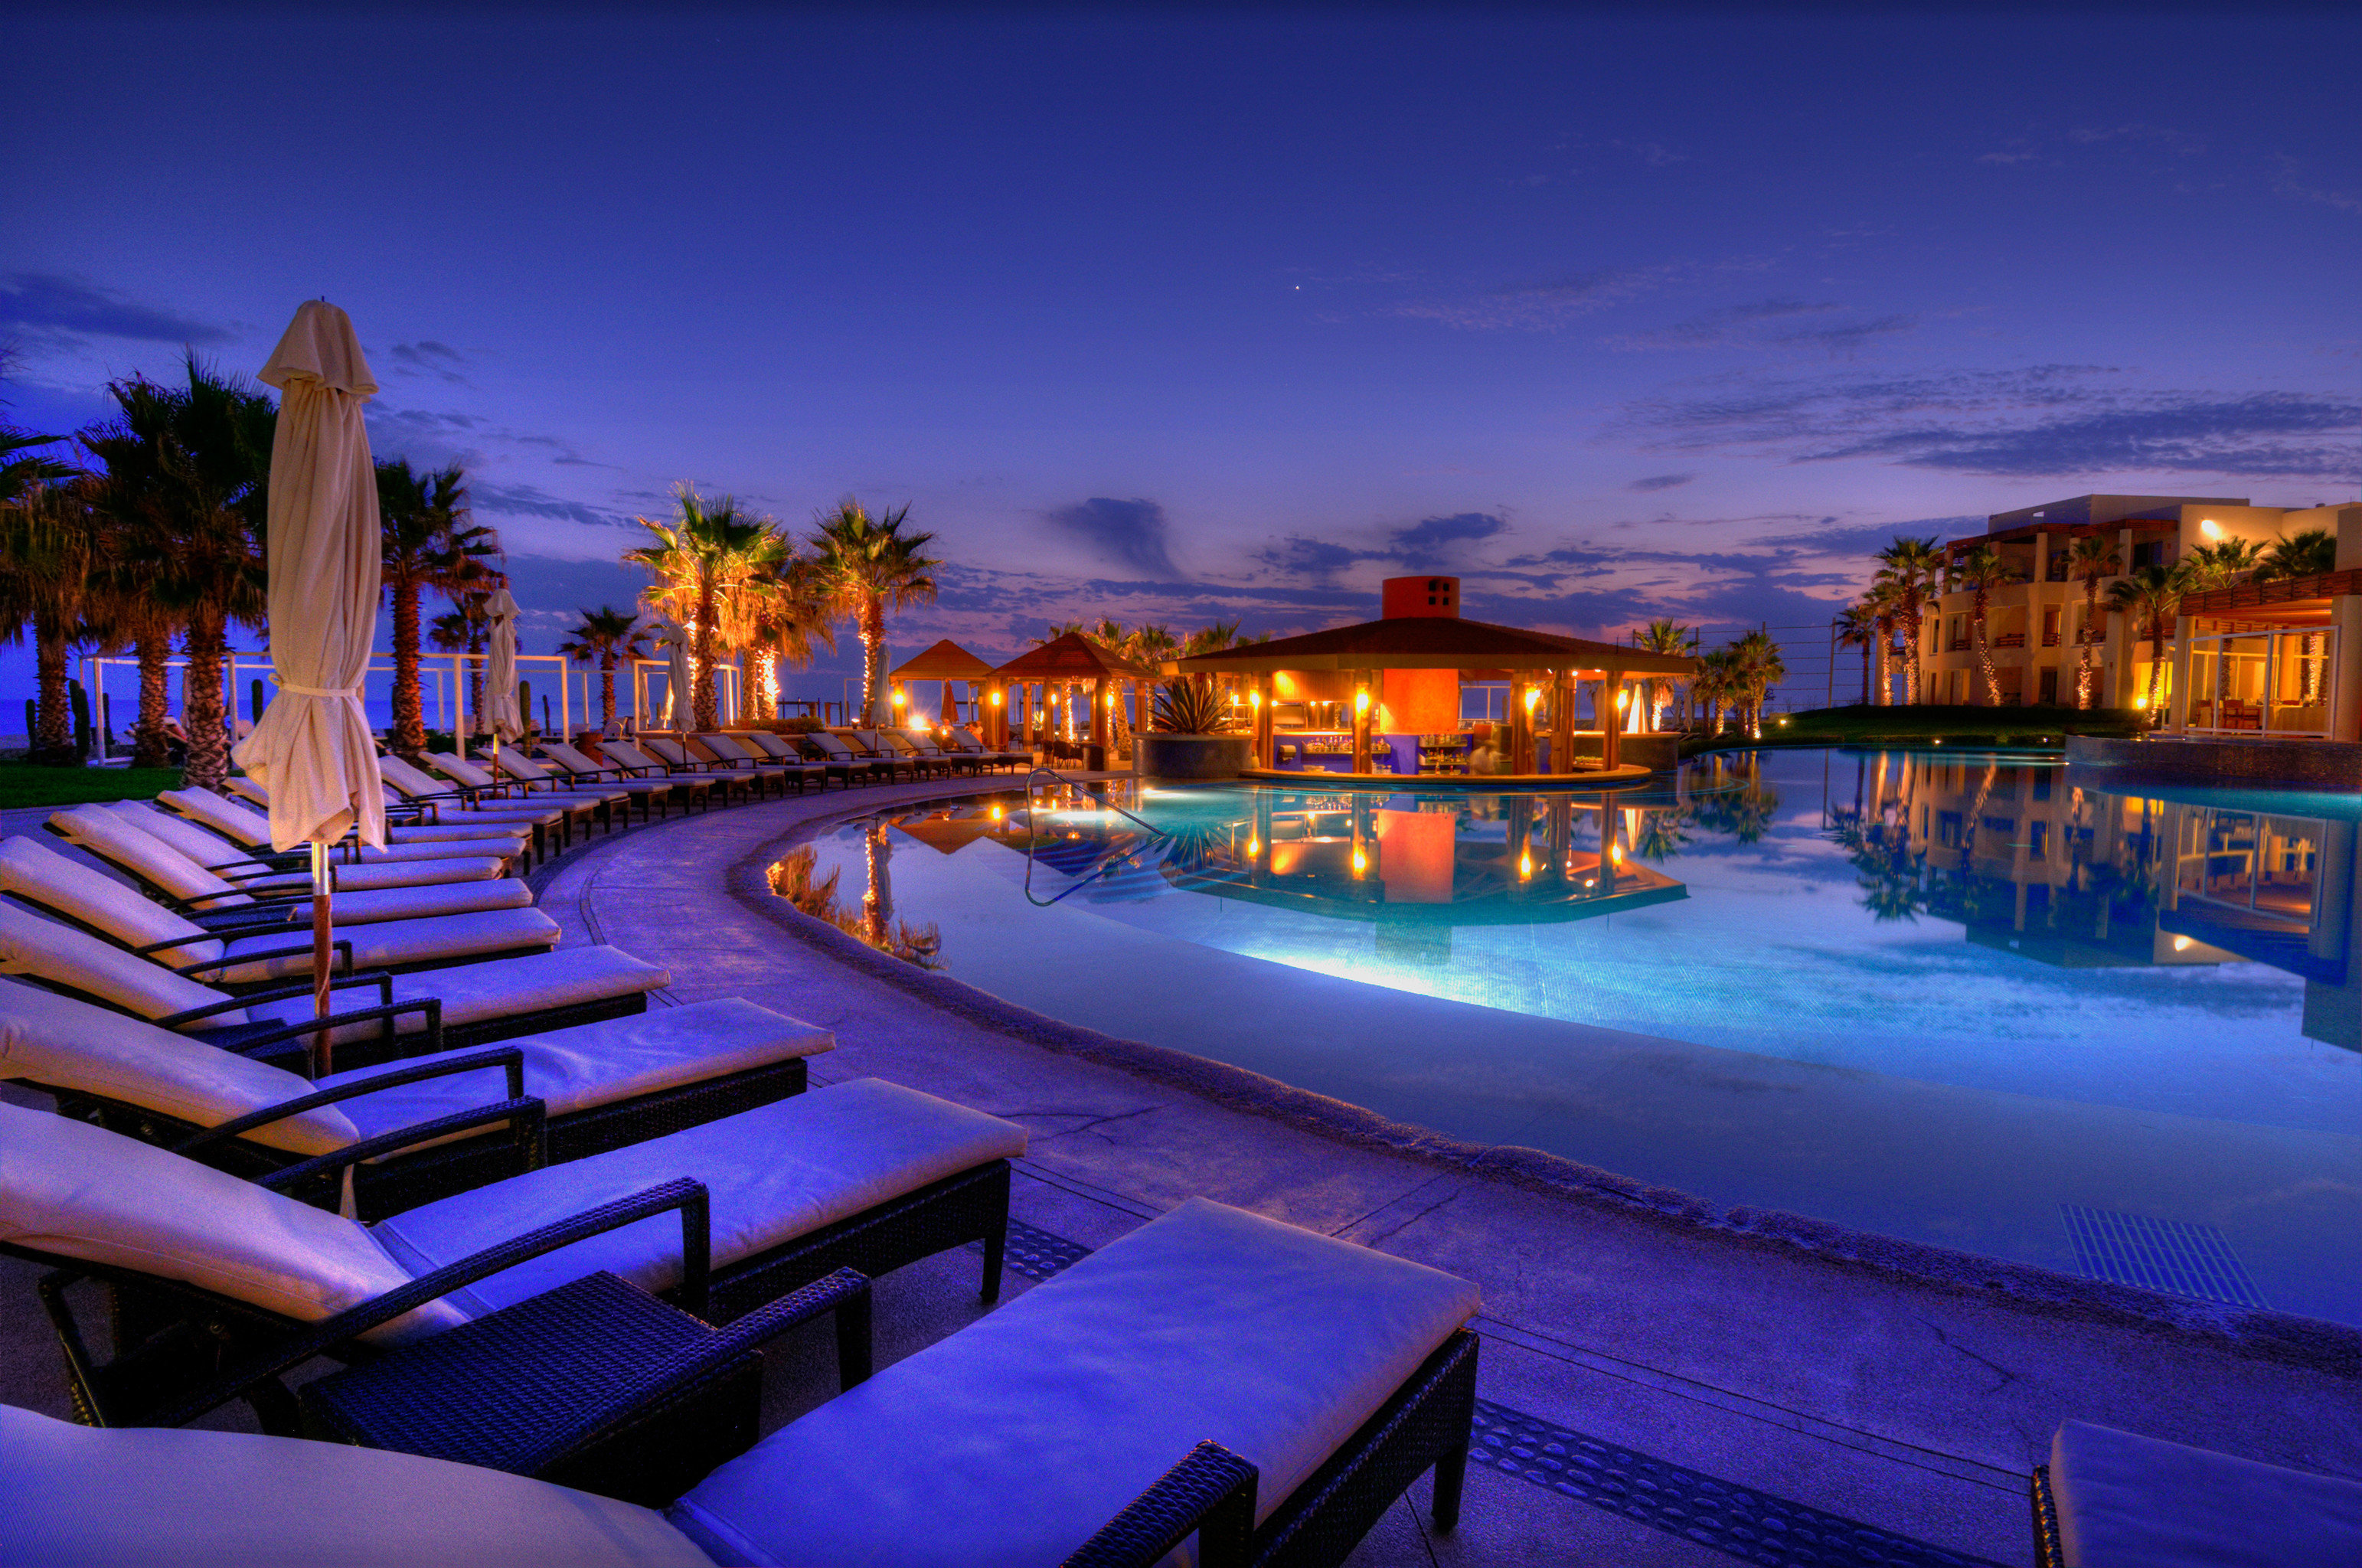 Adult-only All-inclusive Honeymoon Hotels Pool Romance Romantic Tropical Waterfront sky scene night swimming pool evening Resort dusk cityscape Sunset